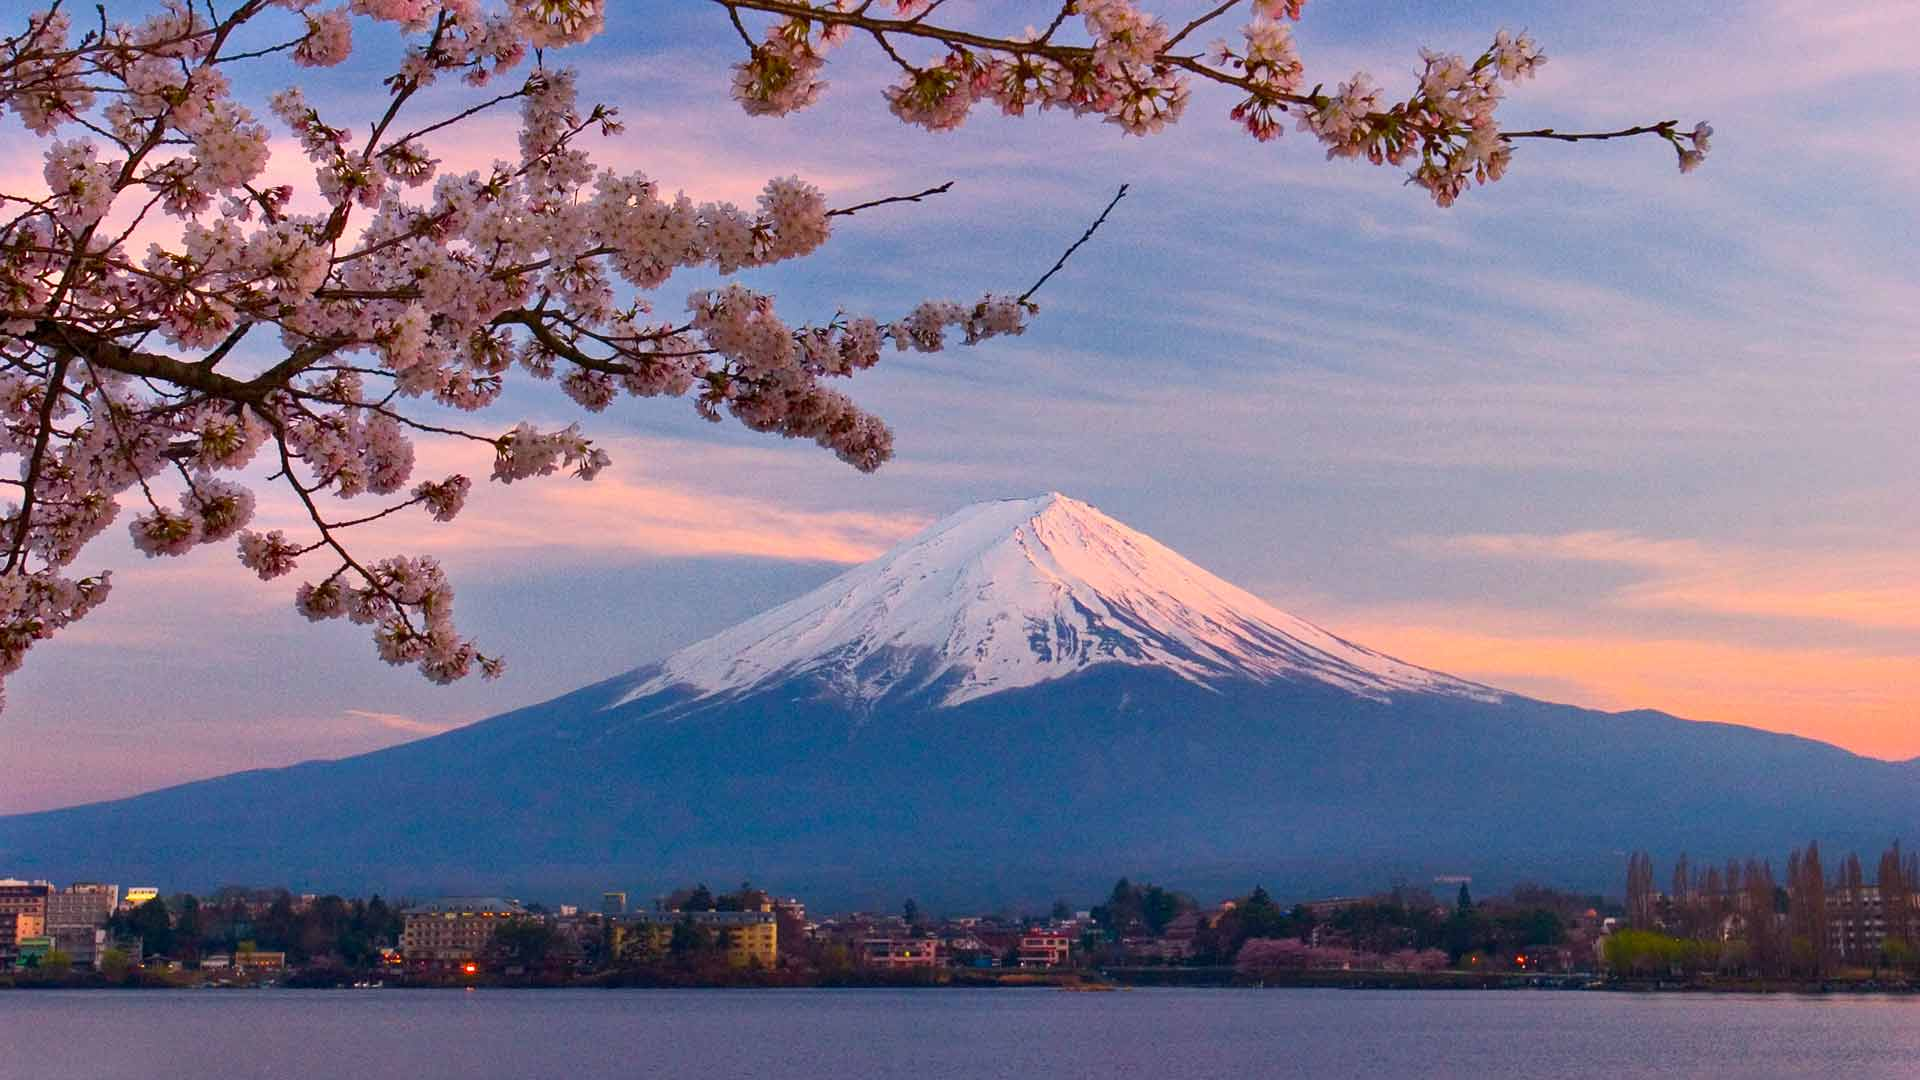 Japans Mount Fuji scenery wallpaper Desktop Background Scenery 1920x1080